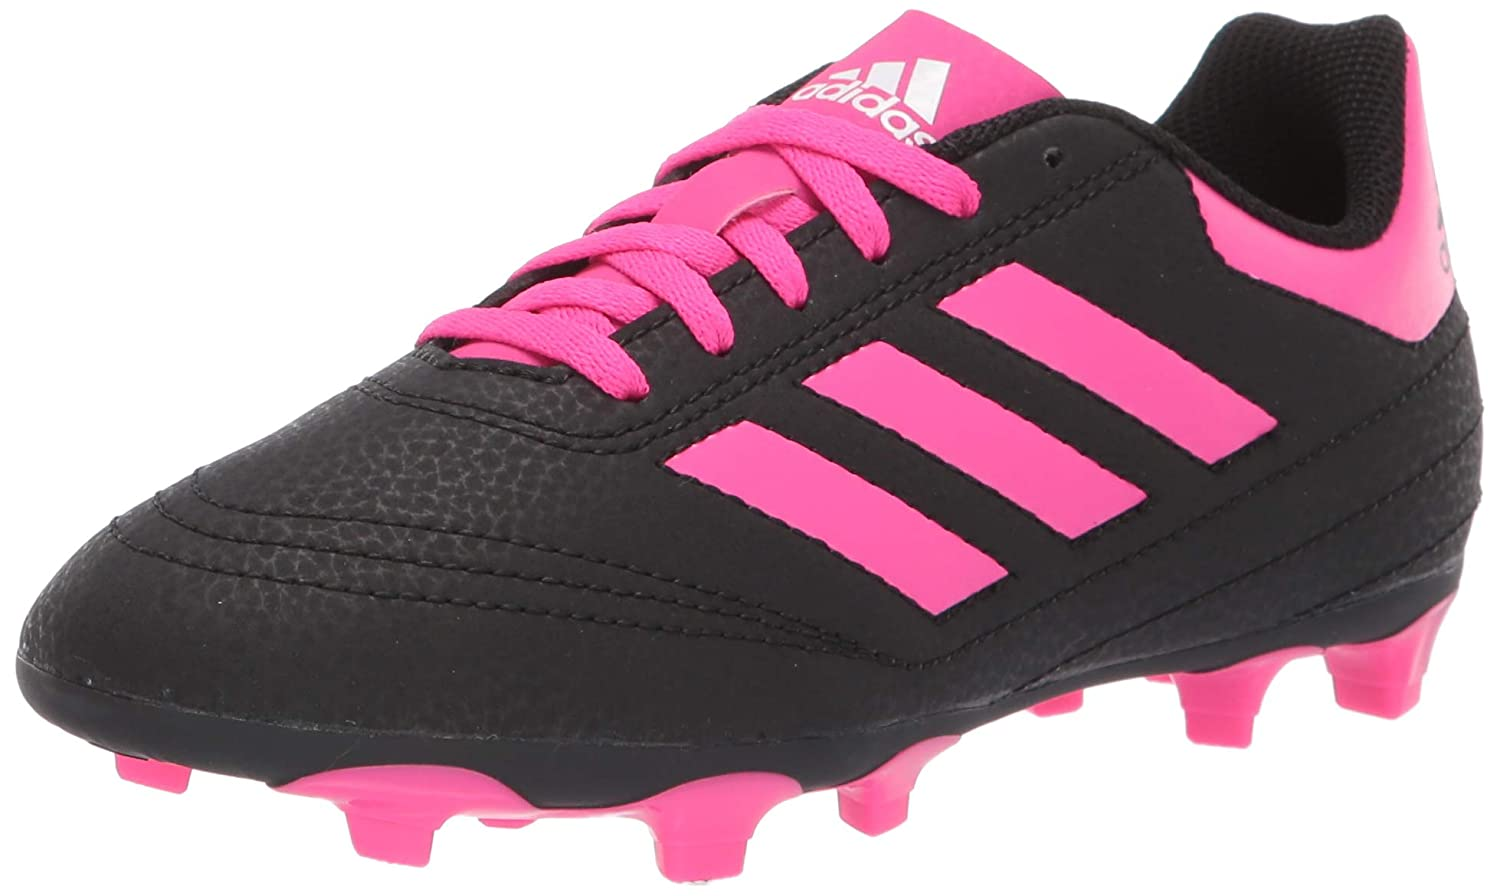 adidas Goletto 6 Firm Ground Cleats Kids'